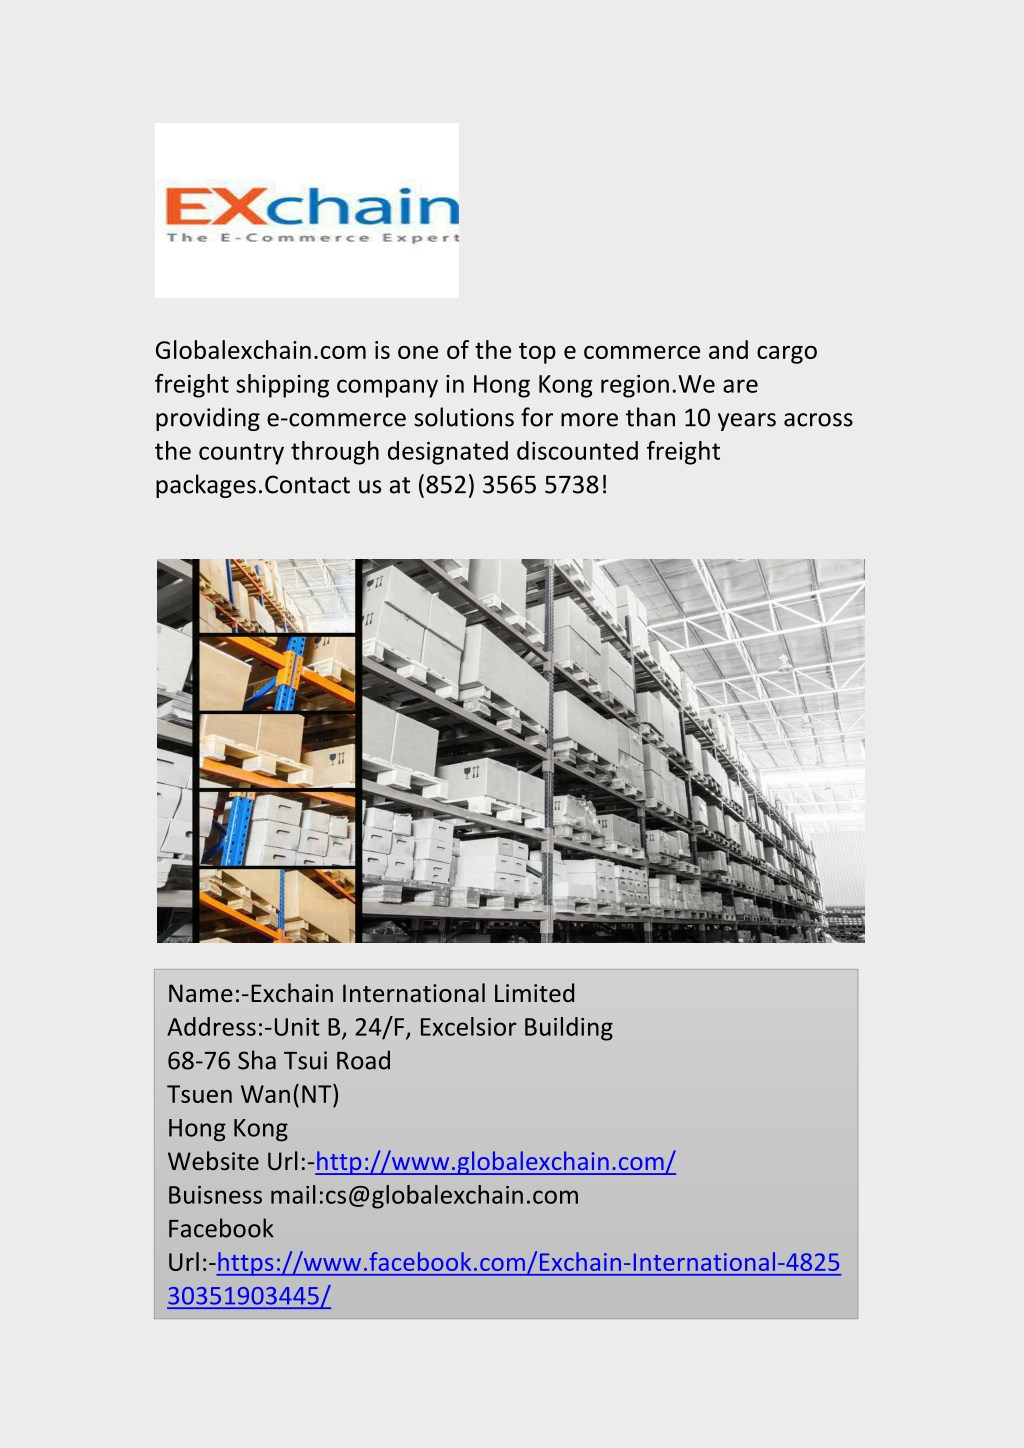 PPT - Top E commerce and Cargo Freight Shipping Company in